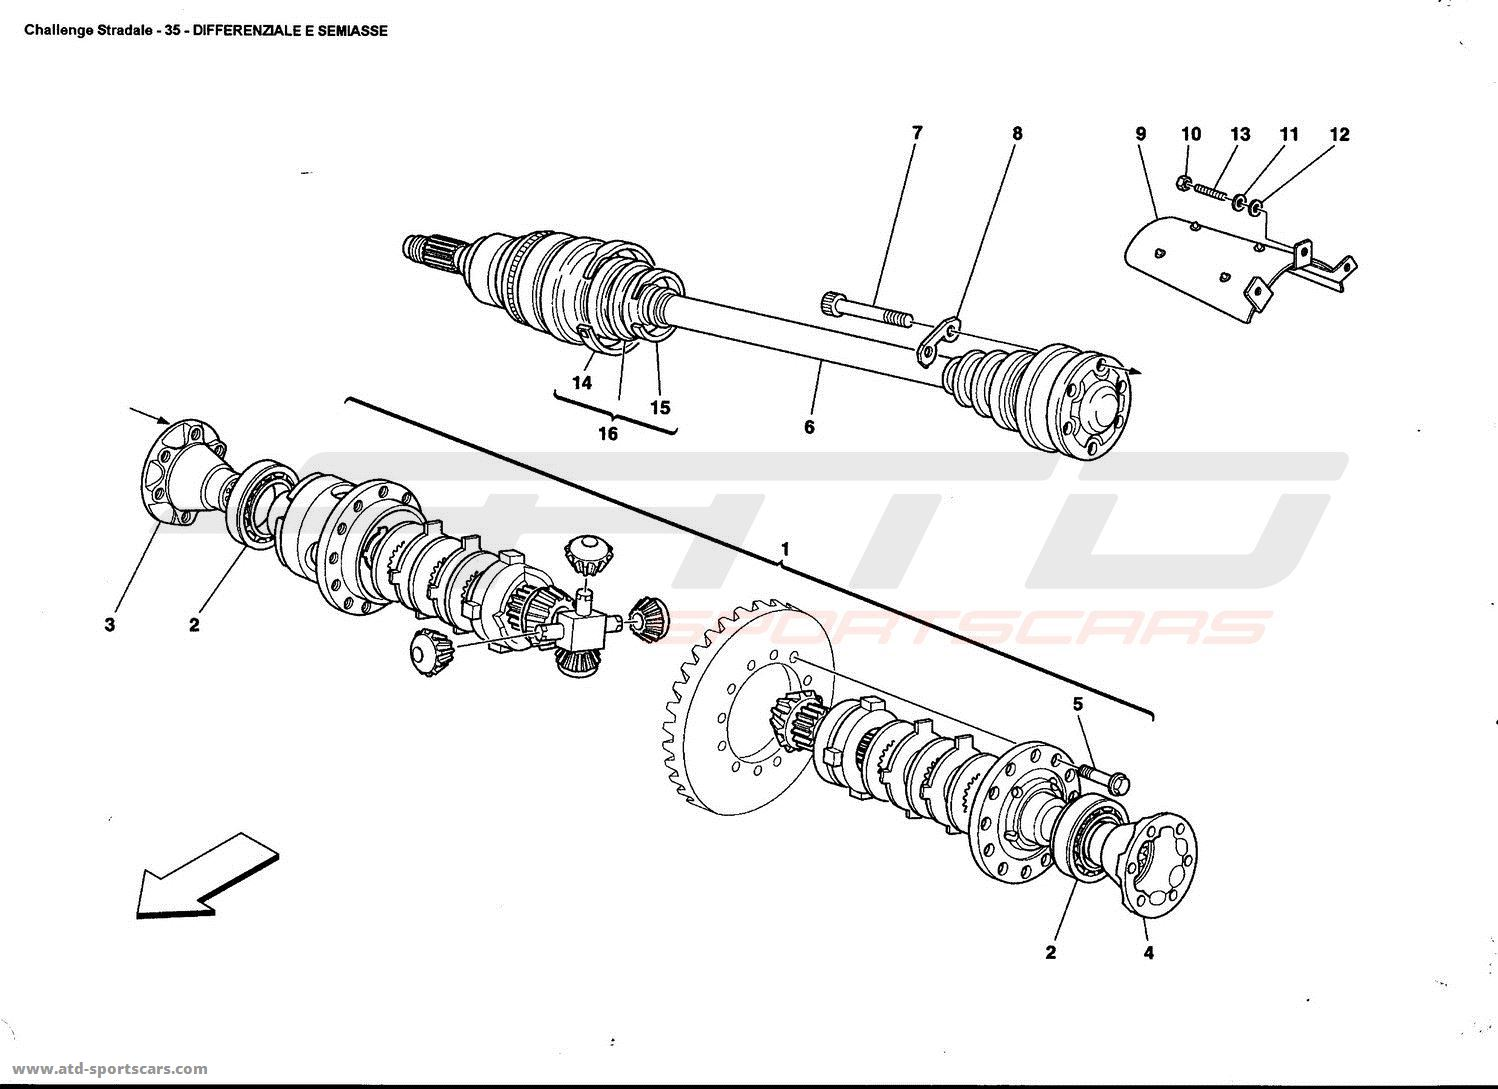 Ferrari 360 Challenge stradale DIFFERENTIAL AND AXLE SHAFT